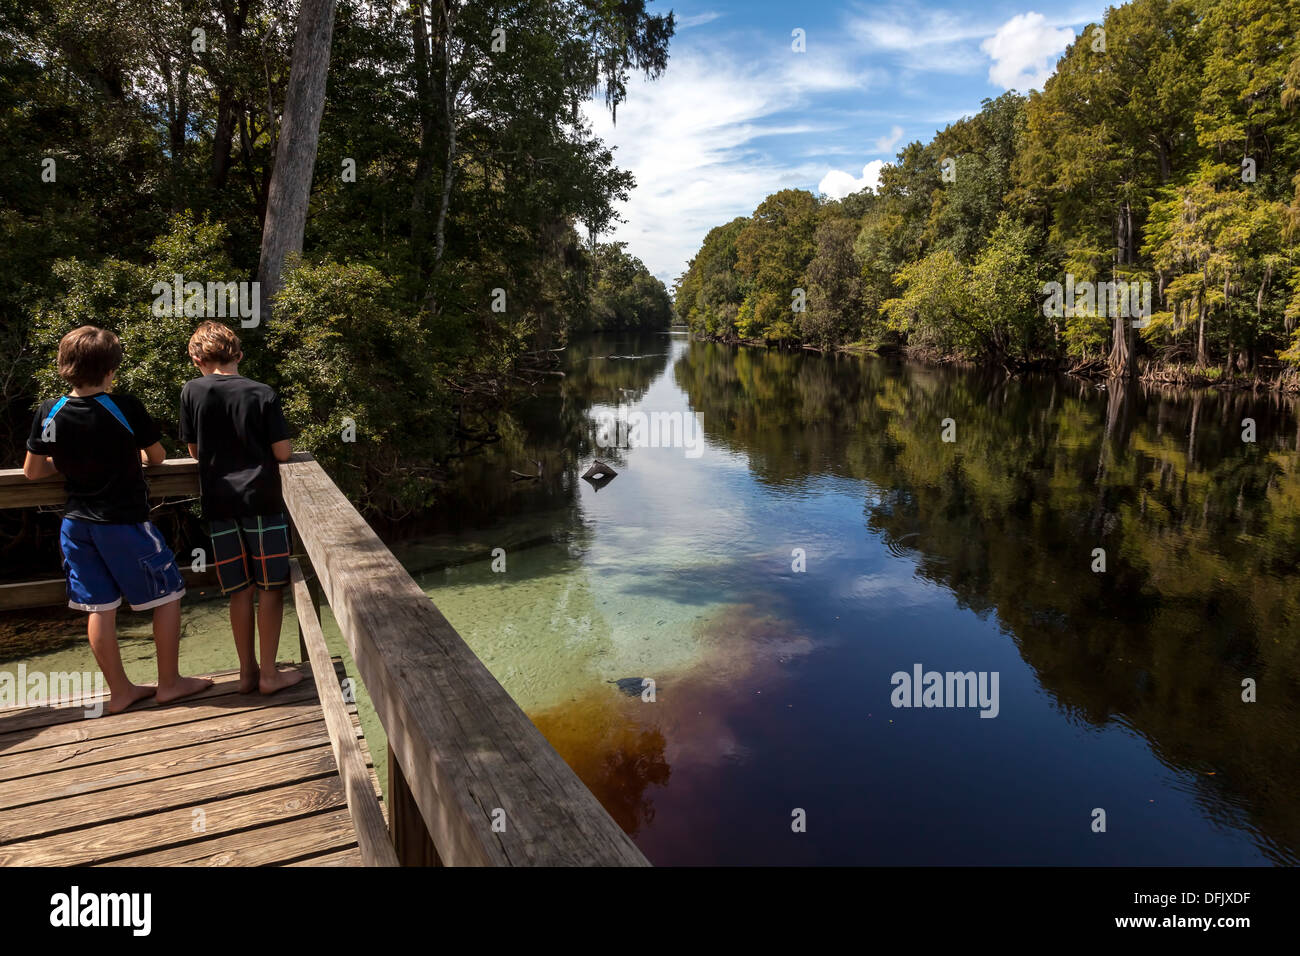 Two young boys on dock boardwalk looking at crystal clear spring water entering the Santa Fe river blackened by root tannins. - Stock Image